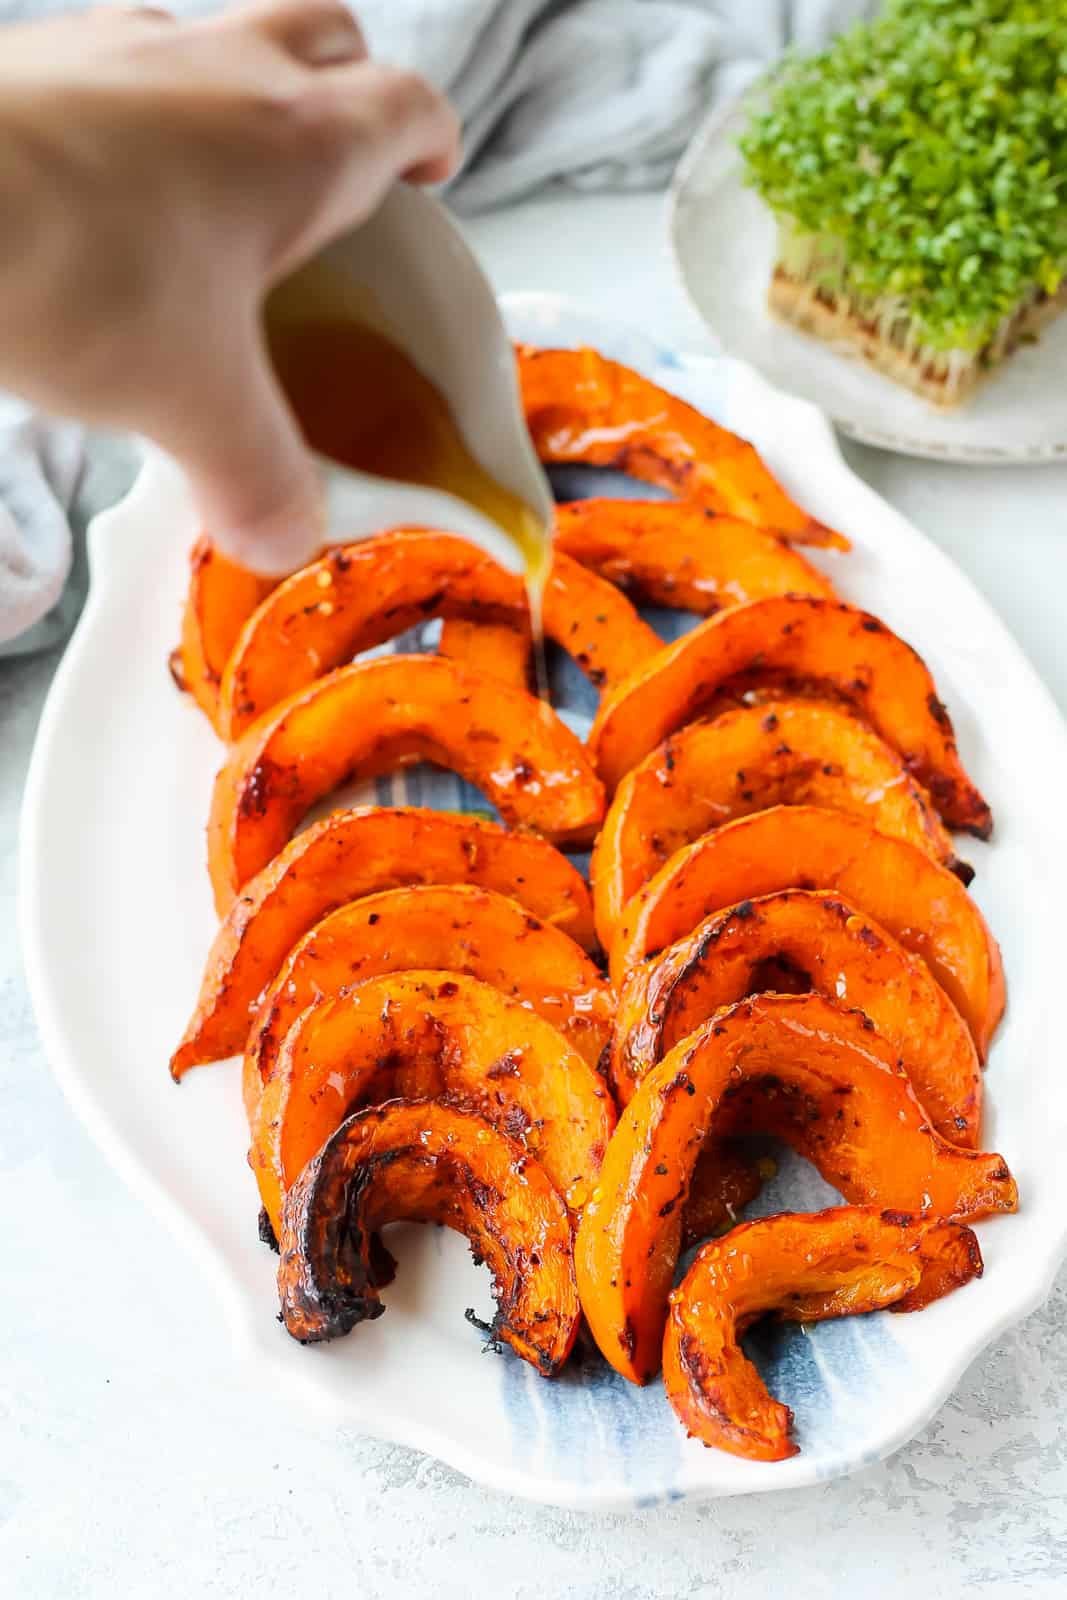 honey being drizzled onto roasted pumpkin slices on a white and blue platter